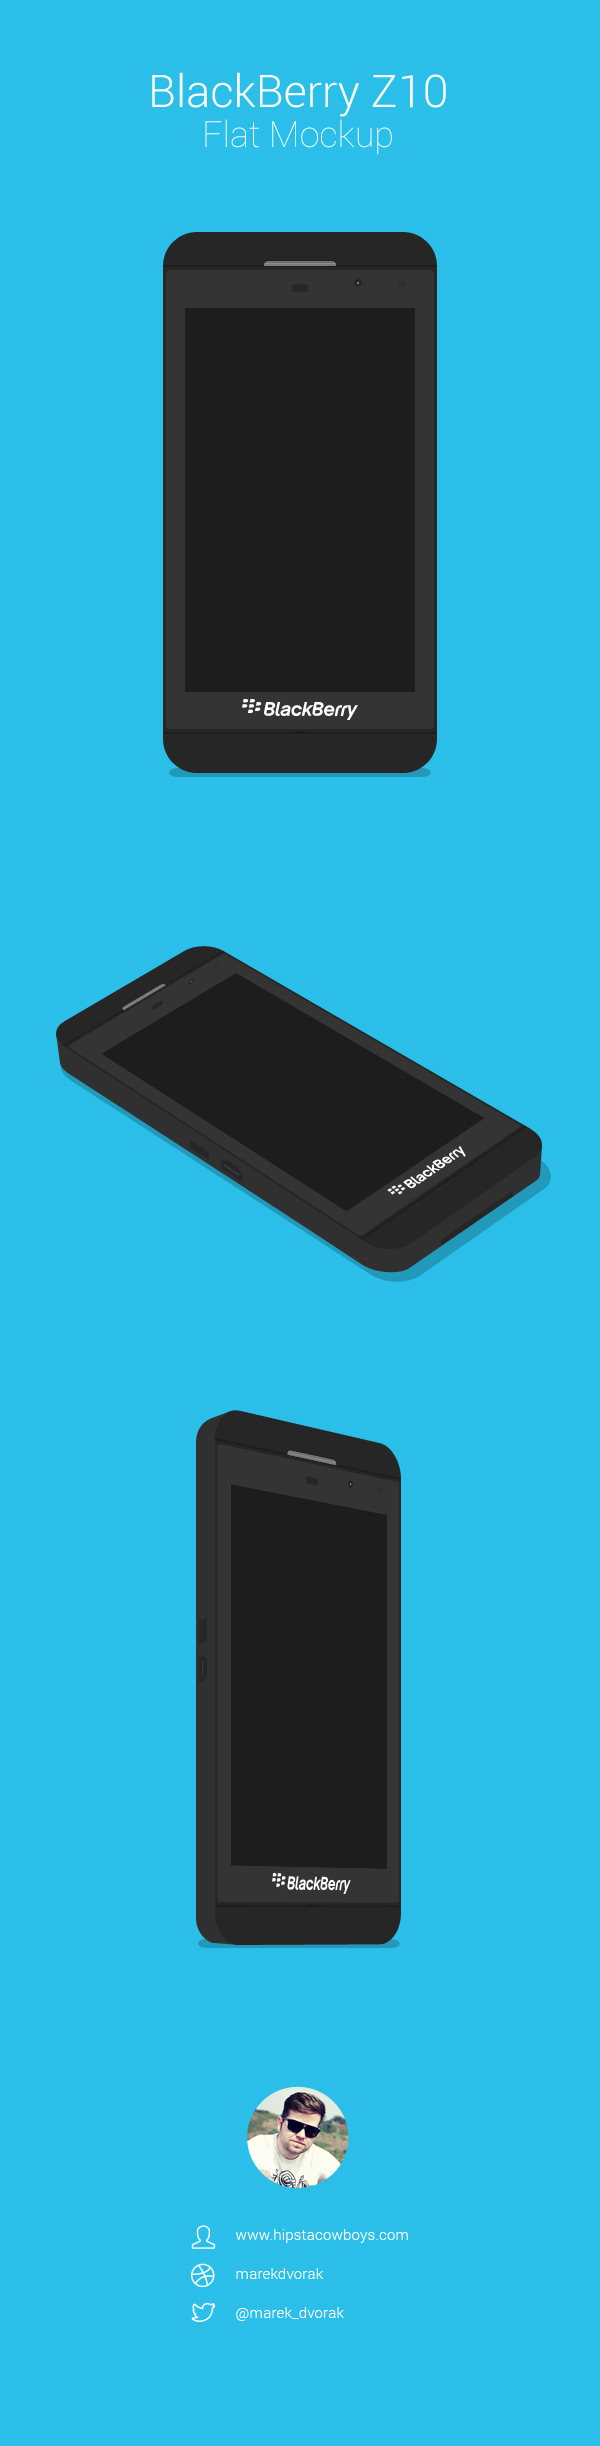 BlackBerry_z10_flat